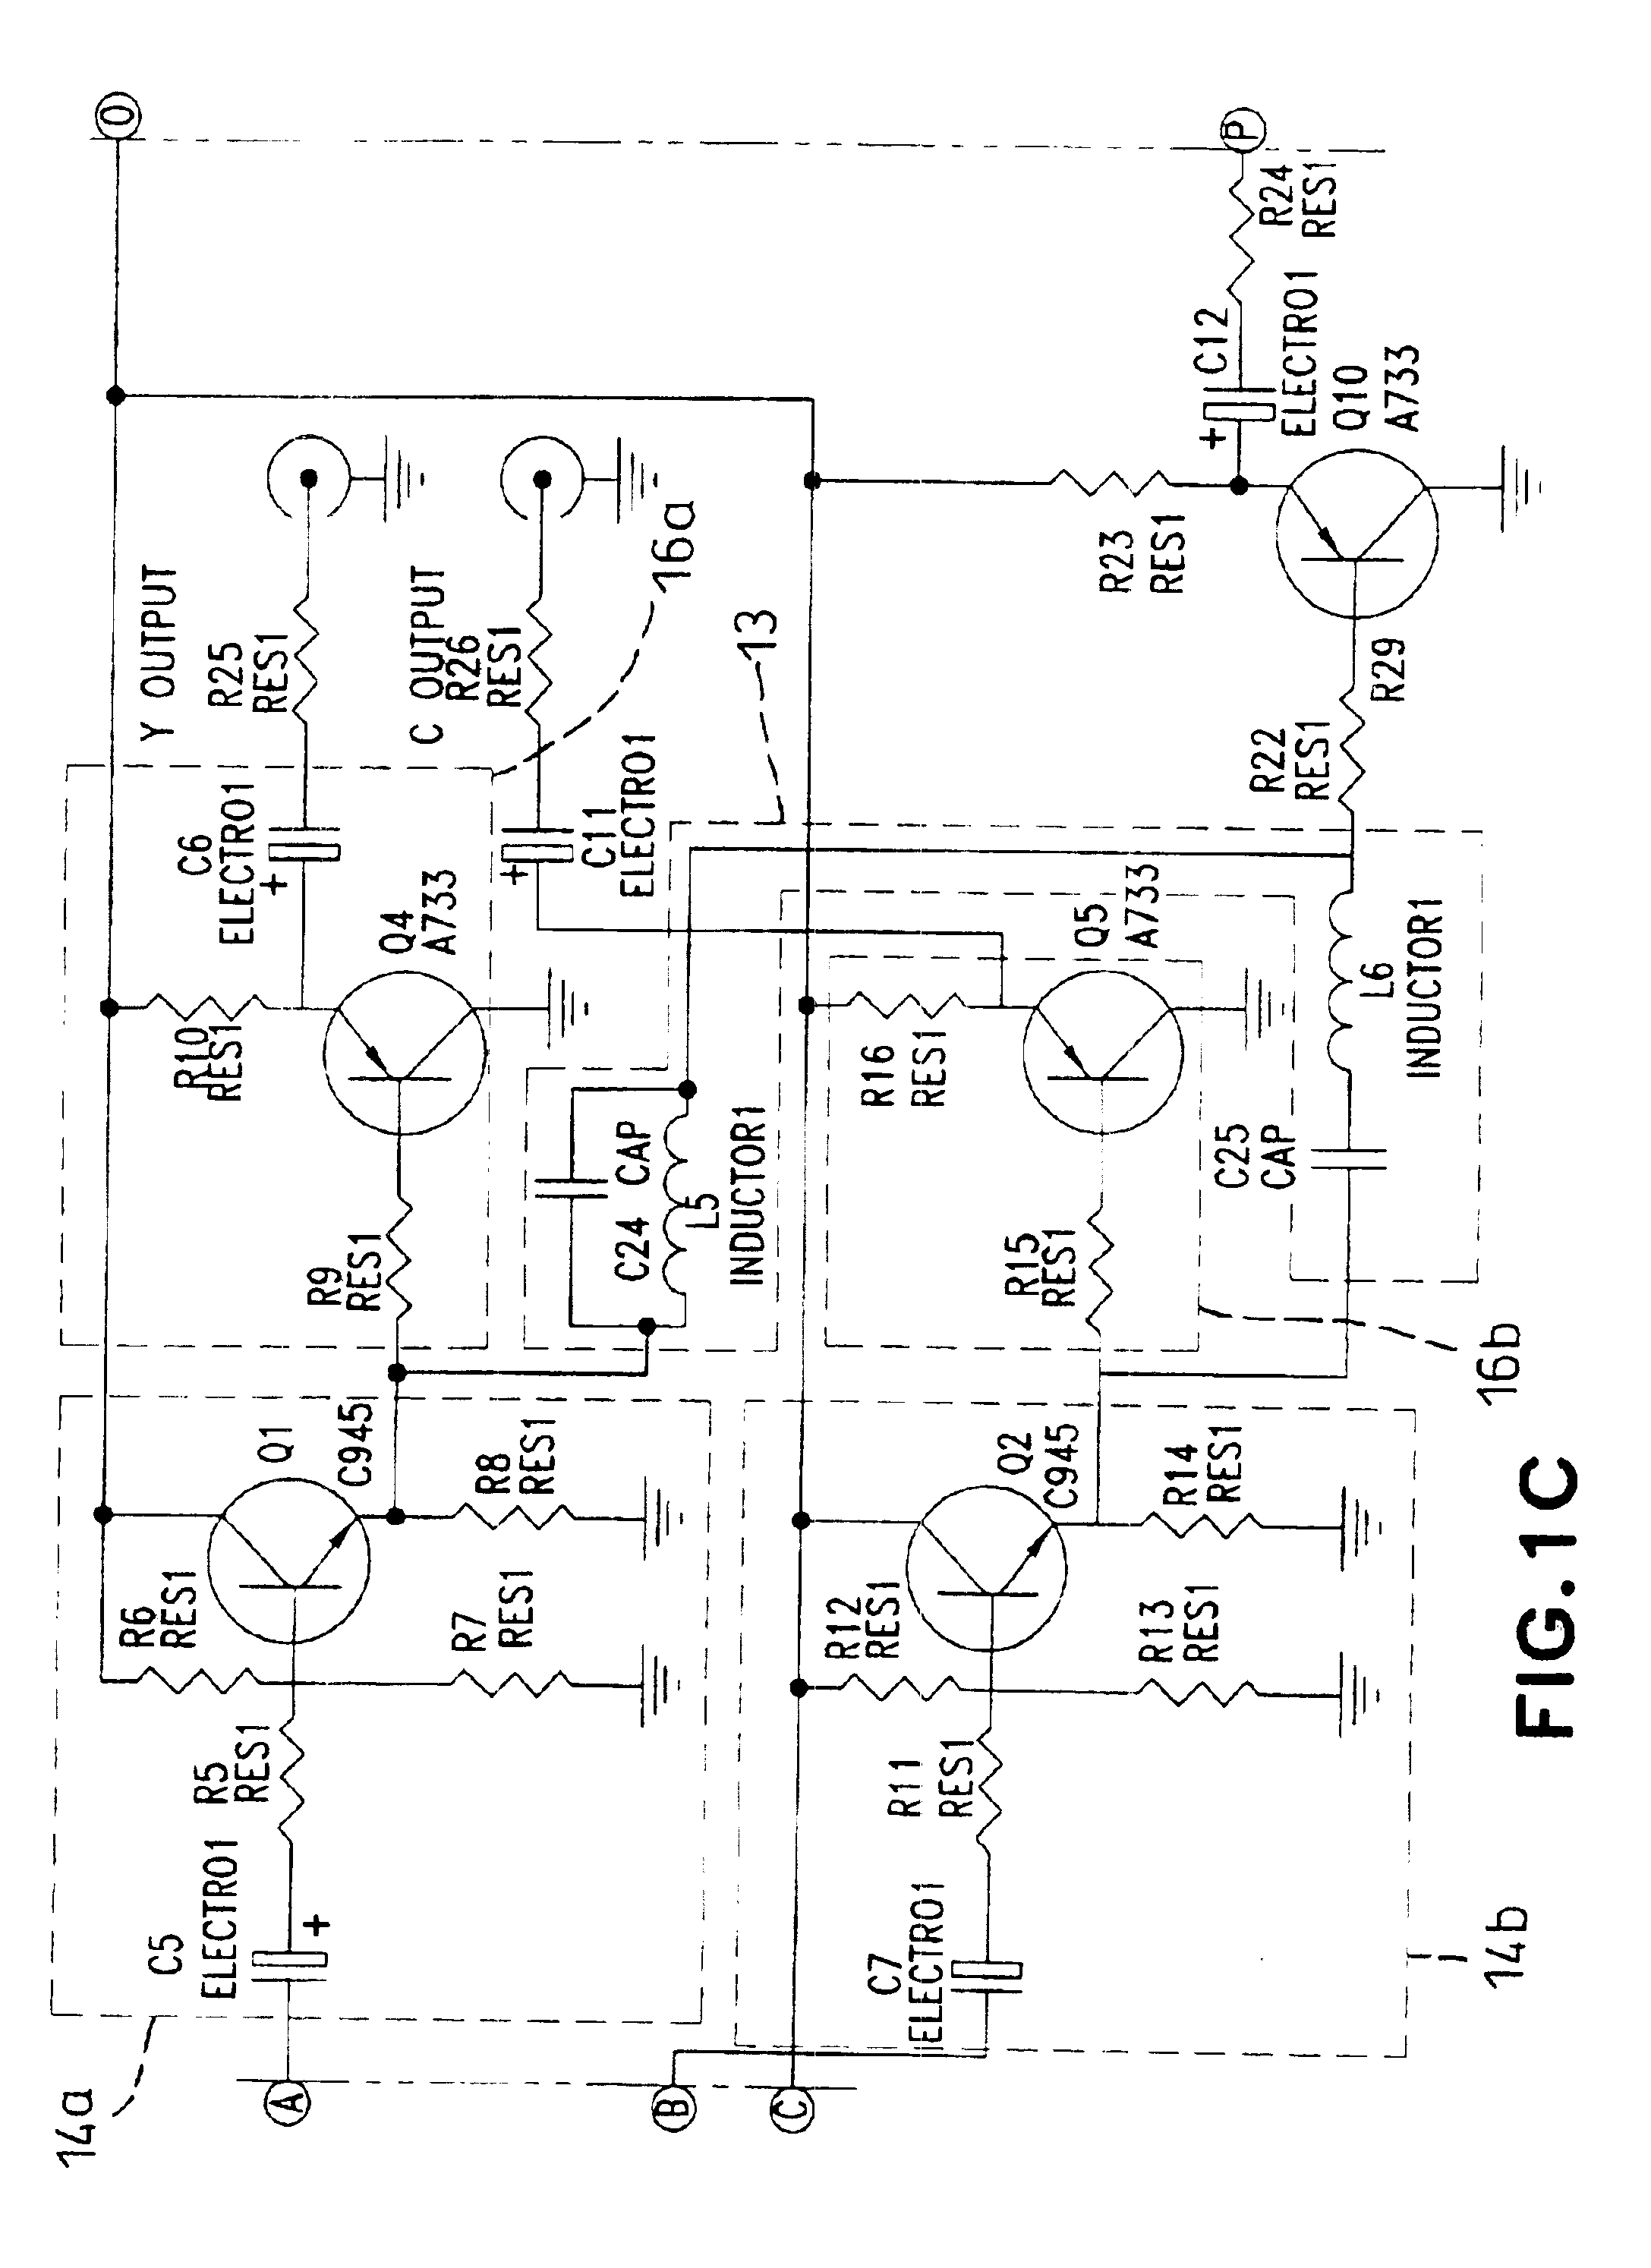 Circuit Drawing At Free For Personal Use Design 2175x2988 Do It By Self With Wiring Diagram Av To Rf Converter